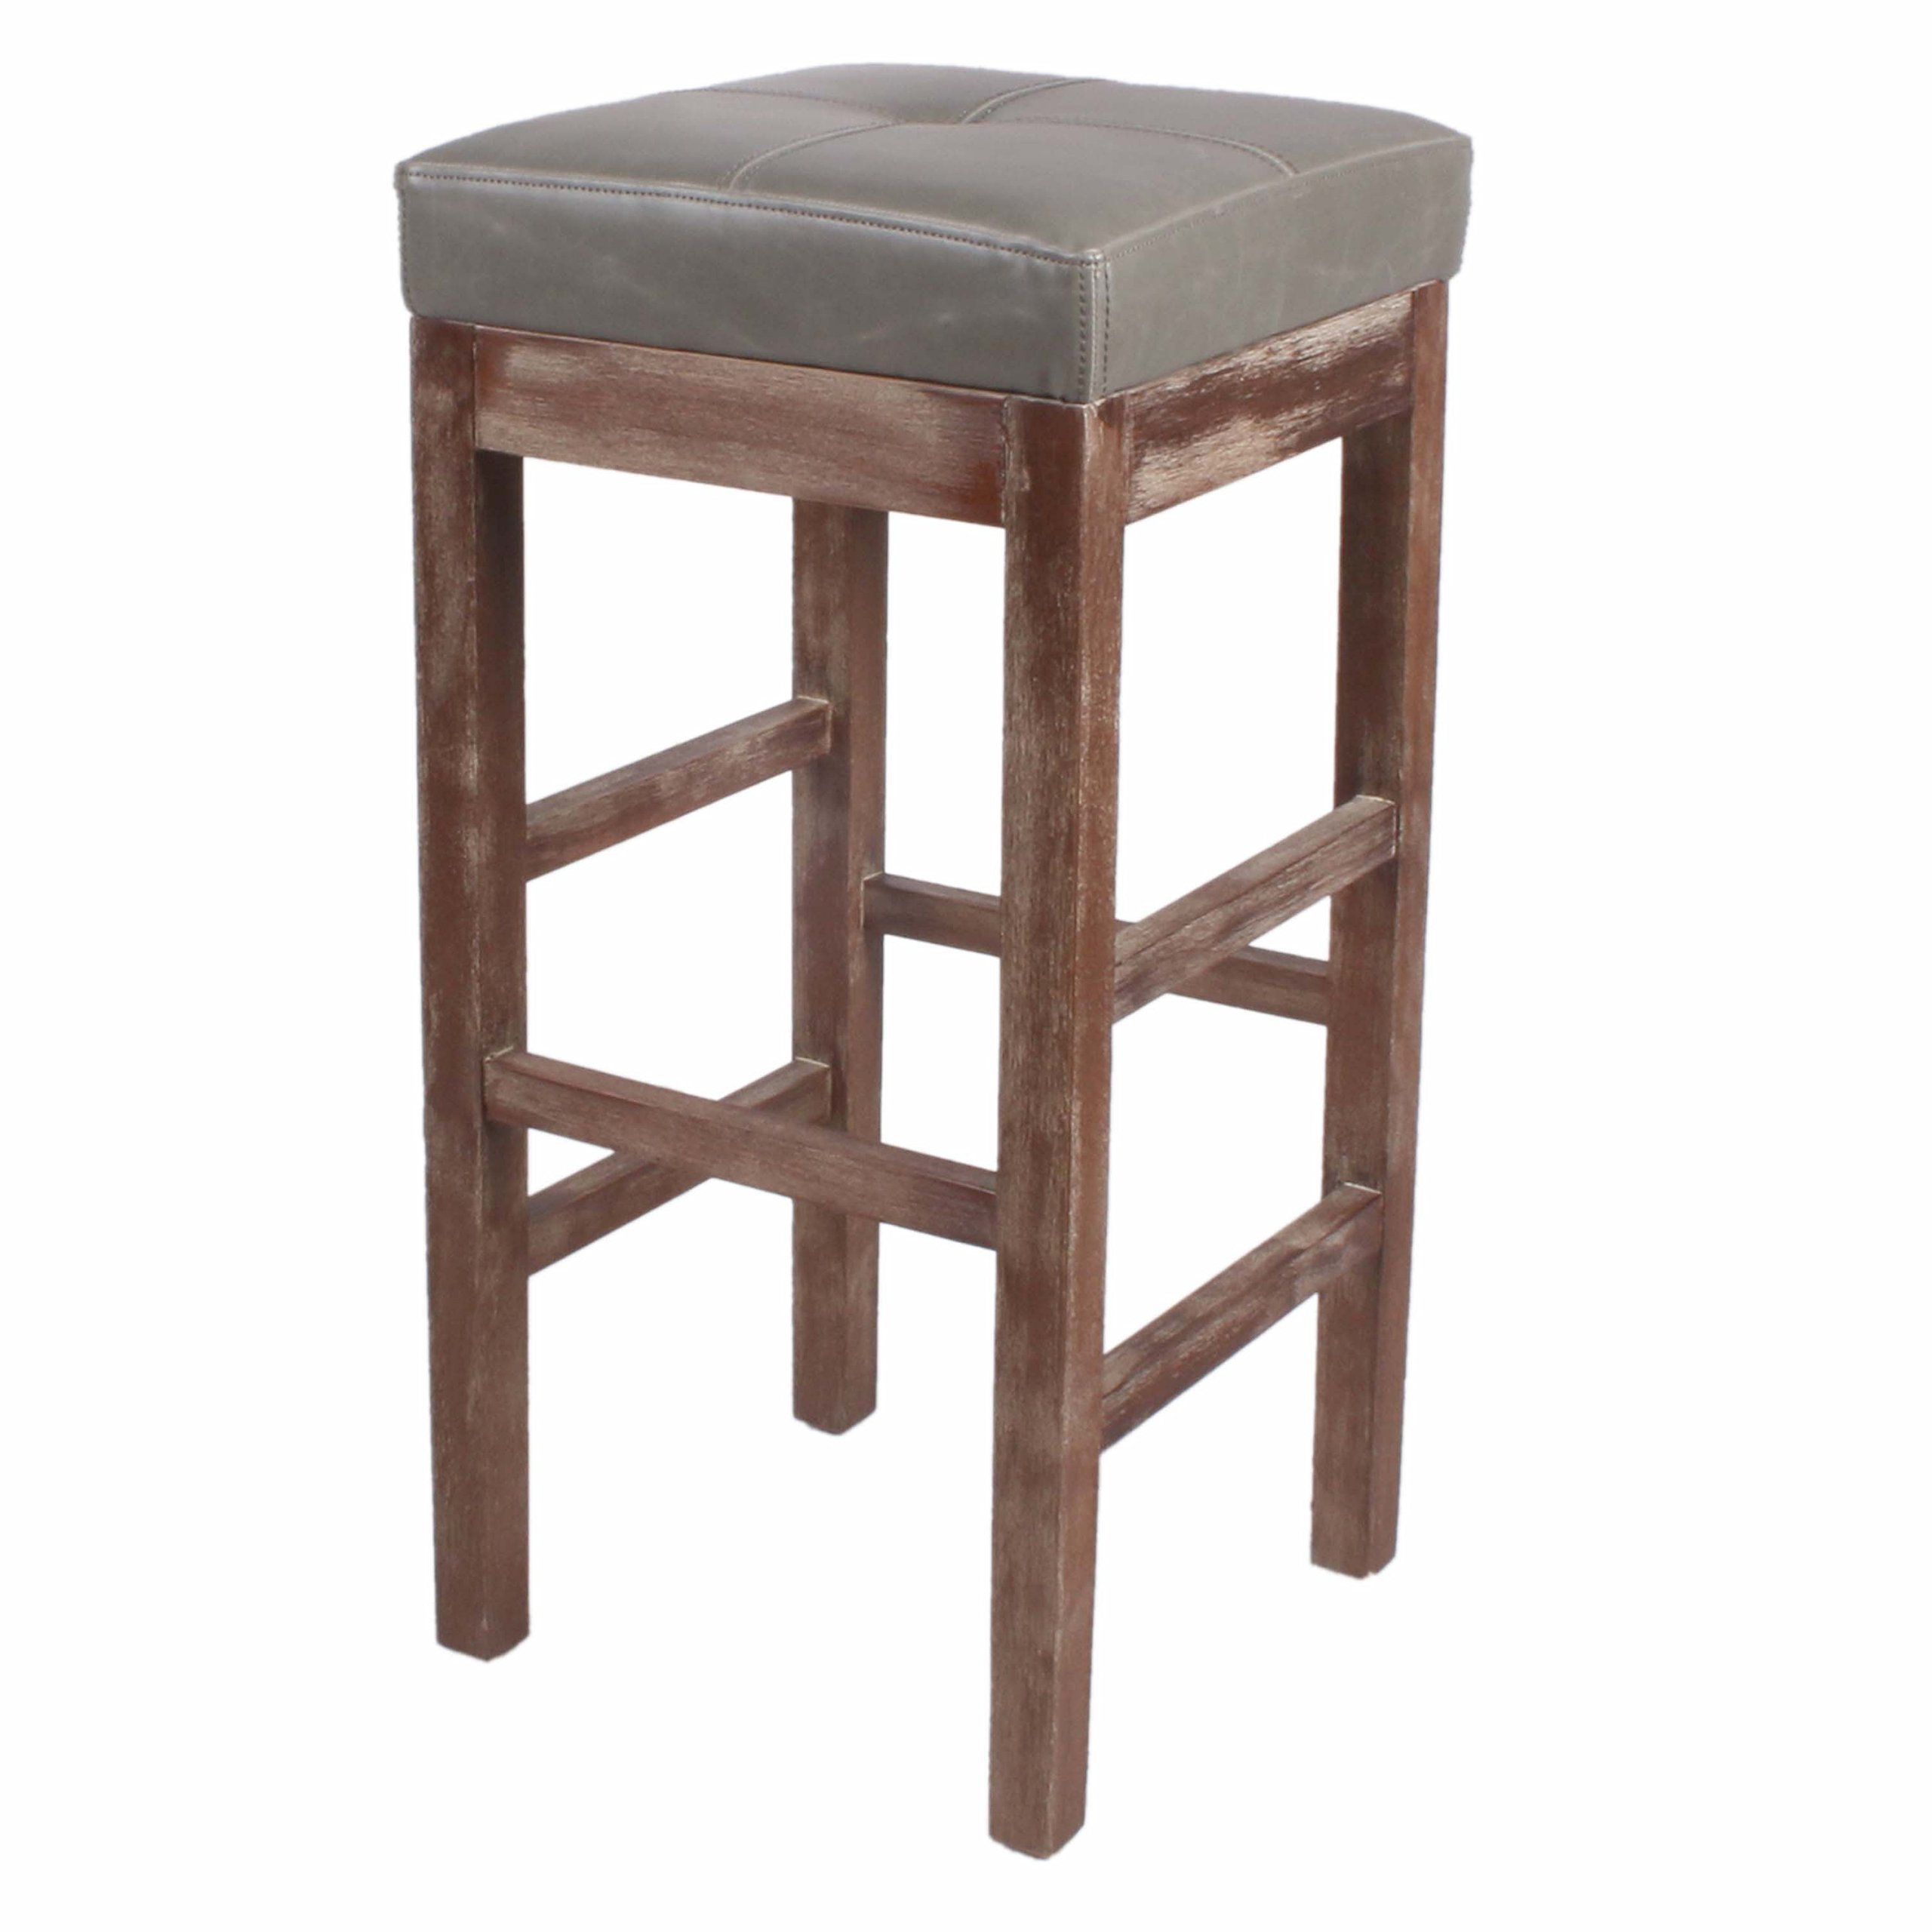 New Pacific Direct Valencia 27'' Bonded Leather Counter Stool, Drift Wood Legs, Vintage Gray by New Pacific Direct